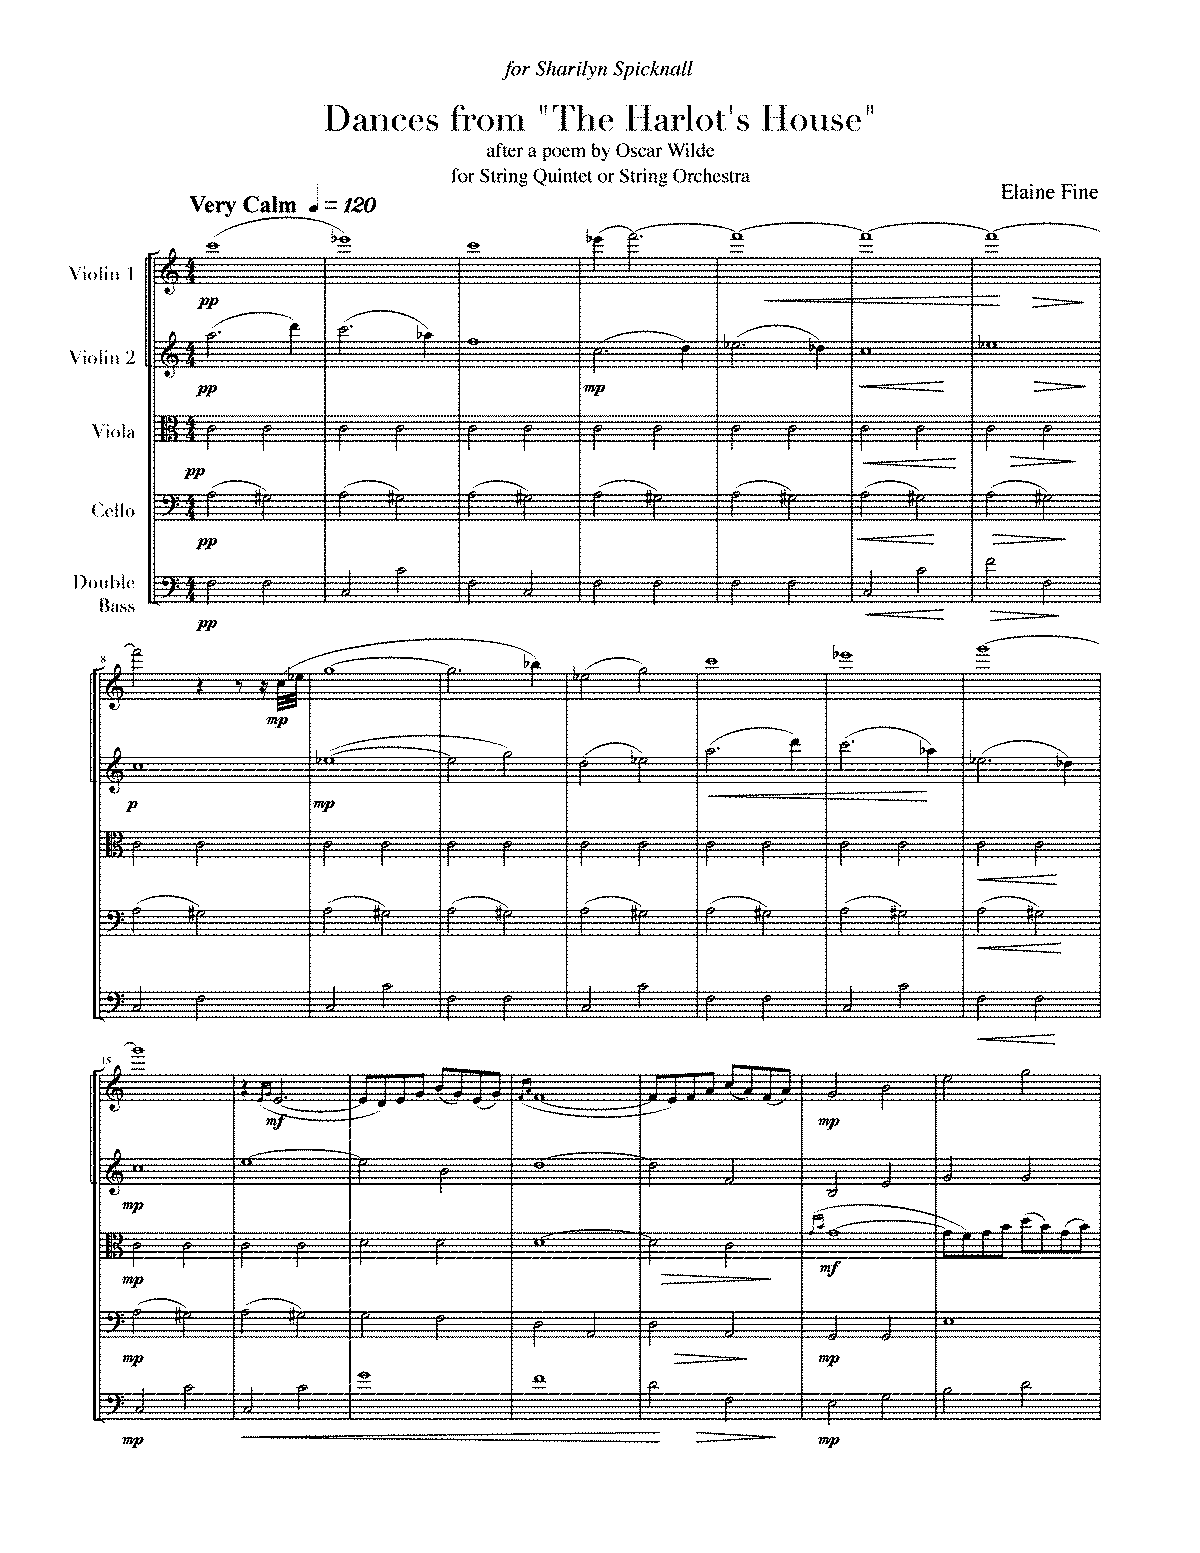 PMLP235291-Dances from the Harlot's House Score and Parts (revised).pdf